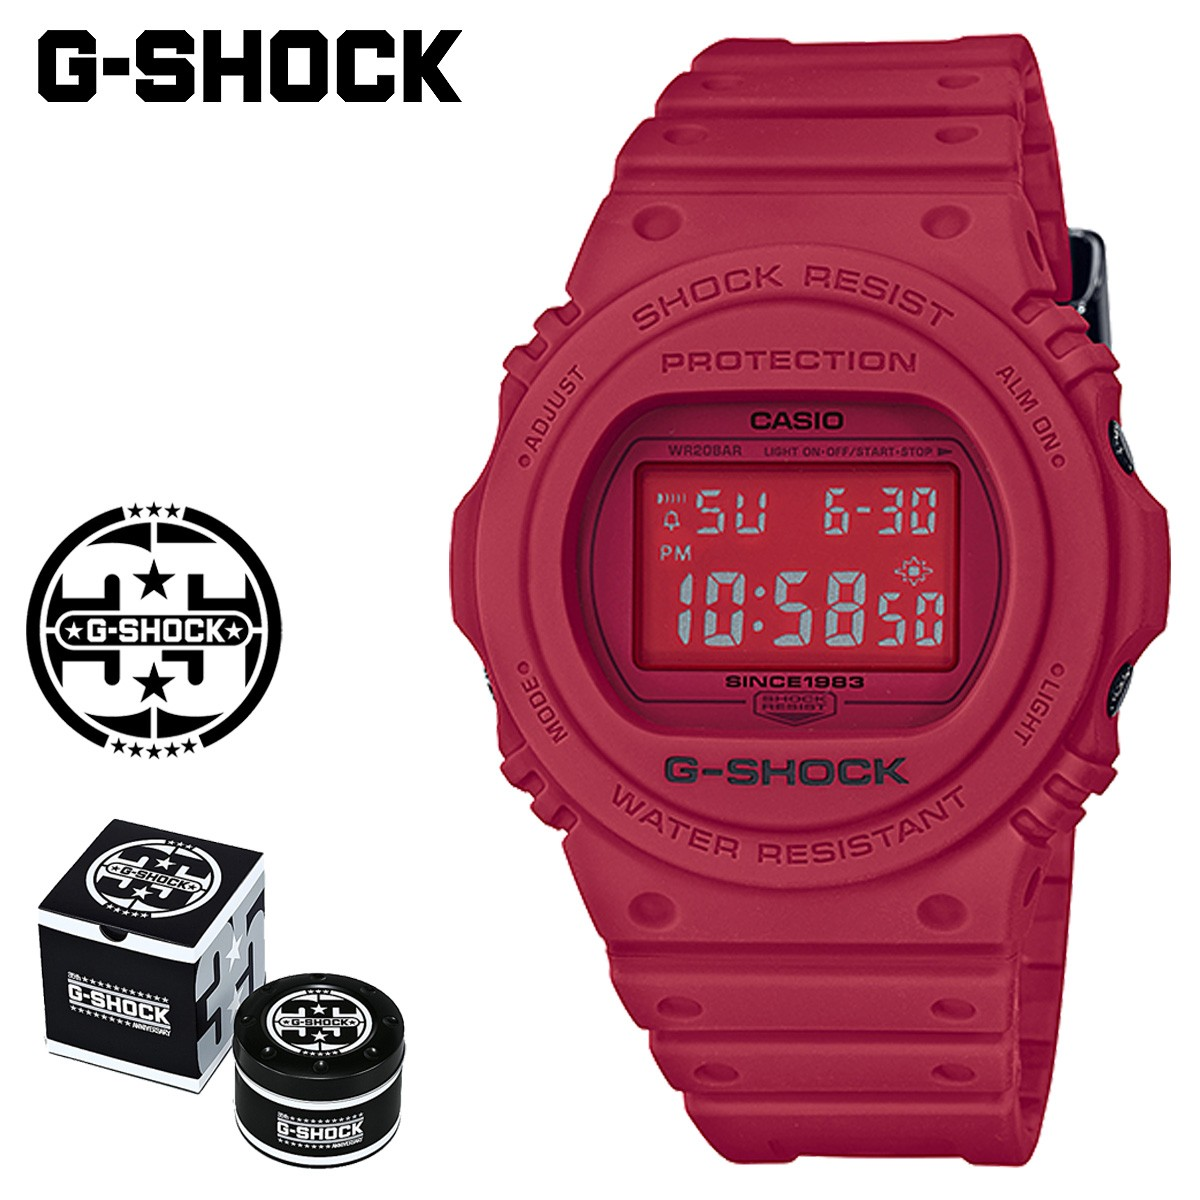 【SOLD OUT】 カシオ CASIO G-SHOCK 腕時計 DW-5735C-4JR RED OUT 35周年 ジーショック Gショック G-ショック レッド メンズ レディース [1/19 新入荷]